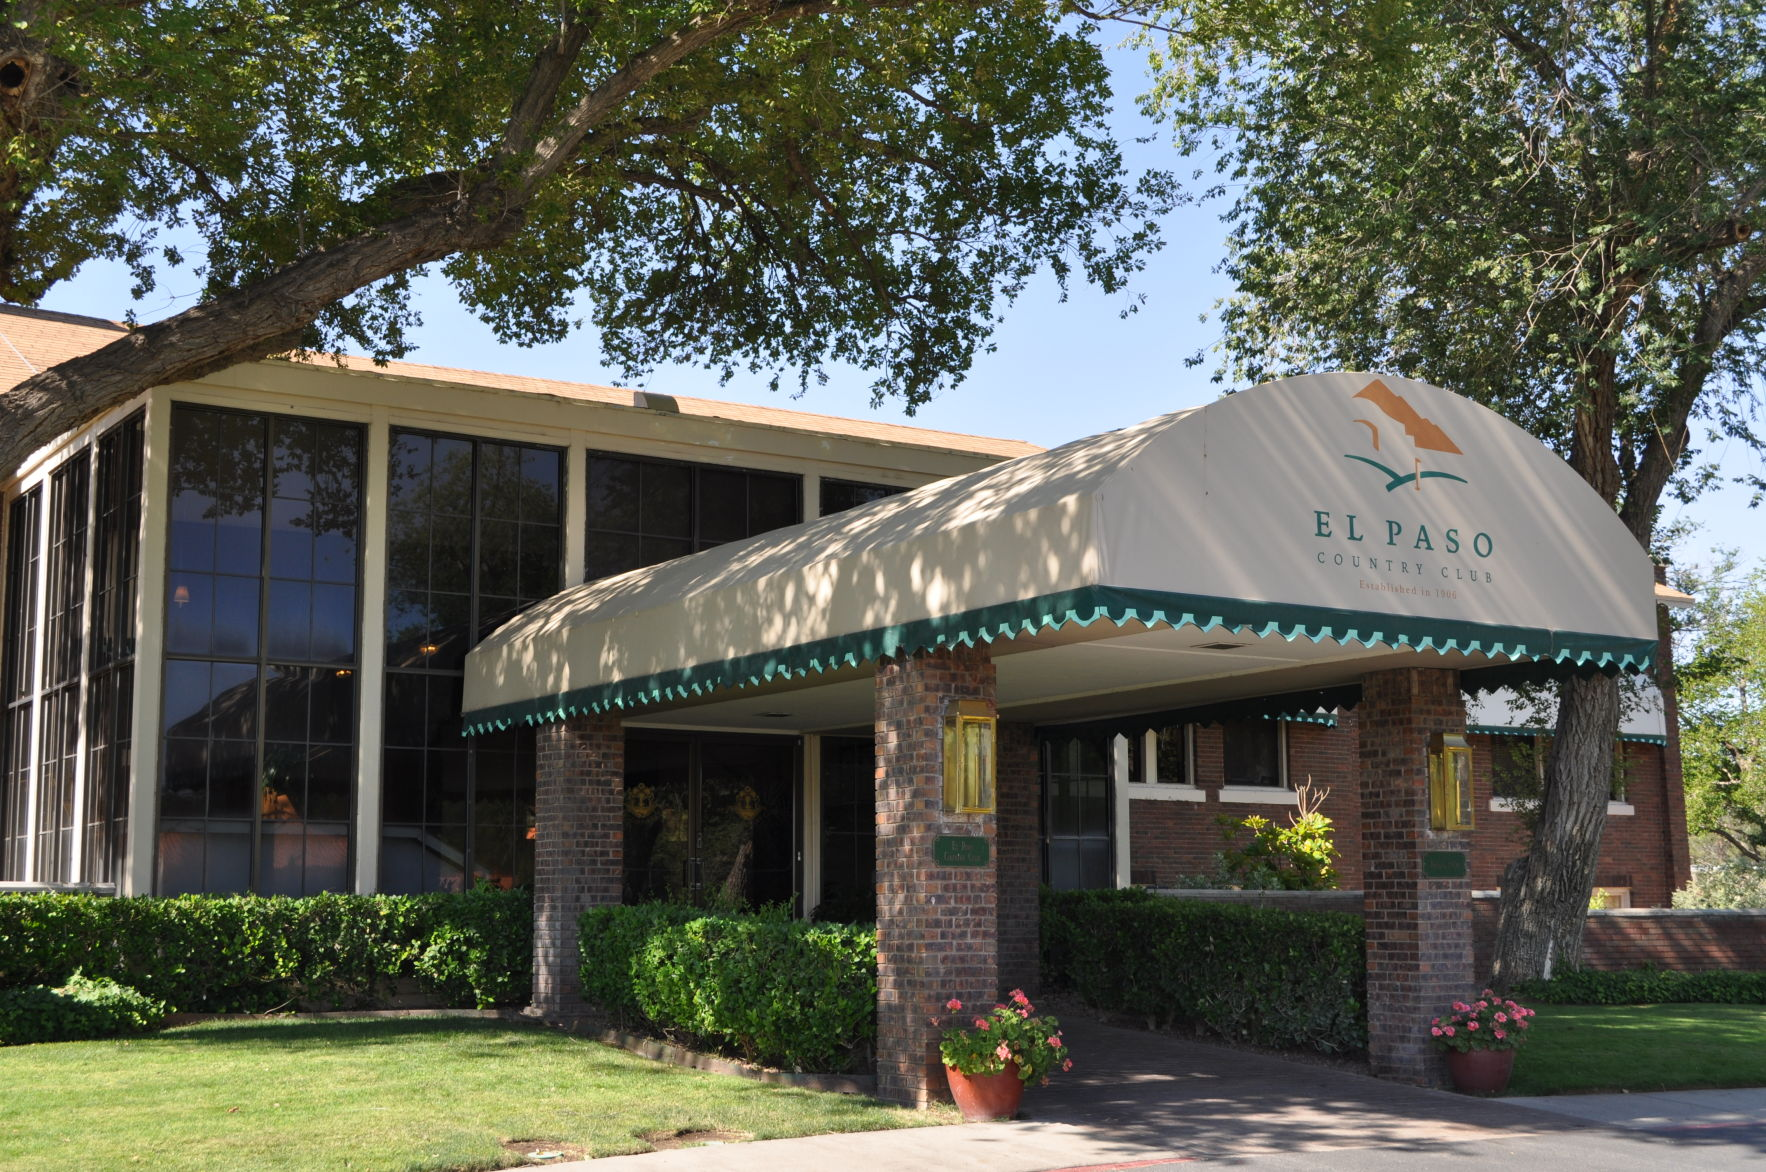 Change of course: $8M makeover - Country club to expand, add family features